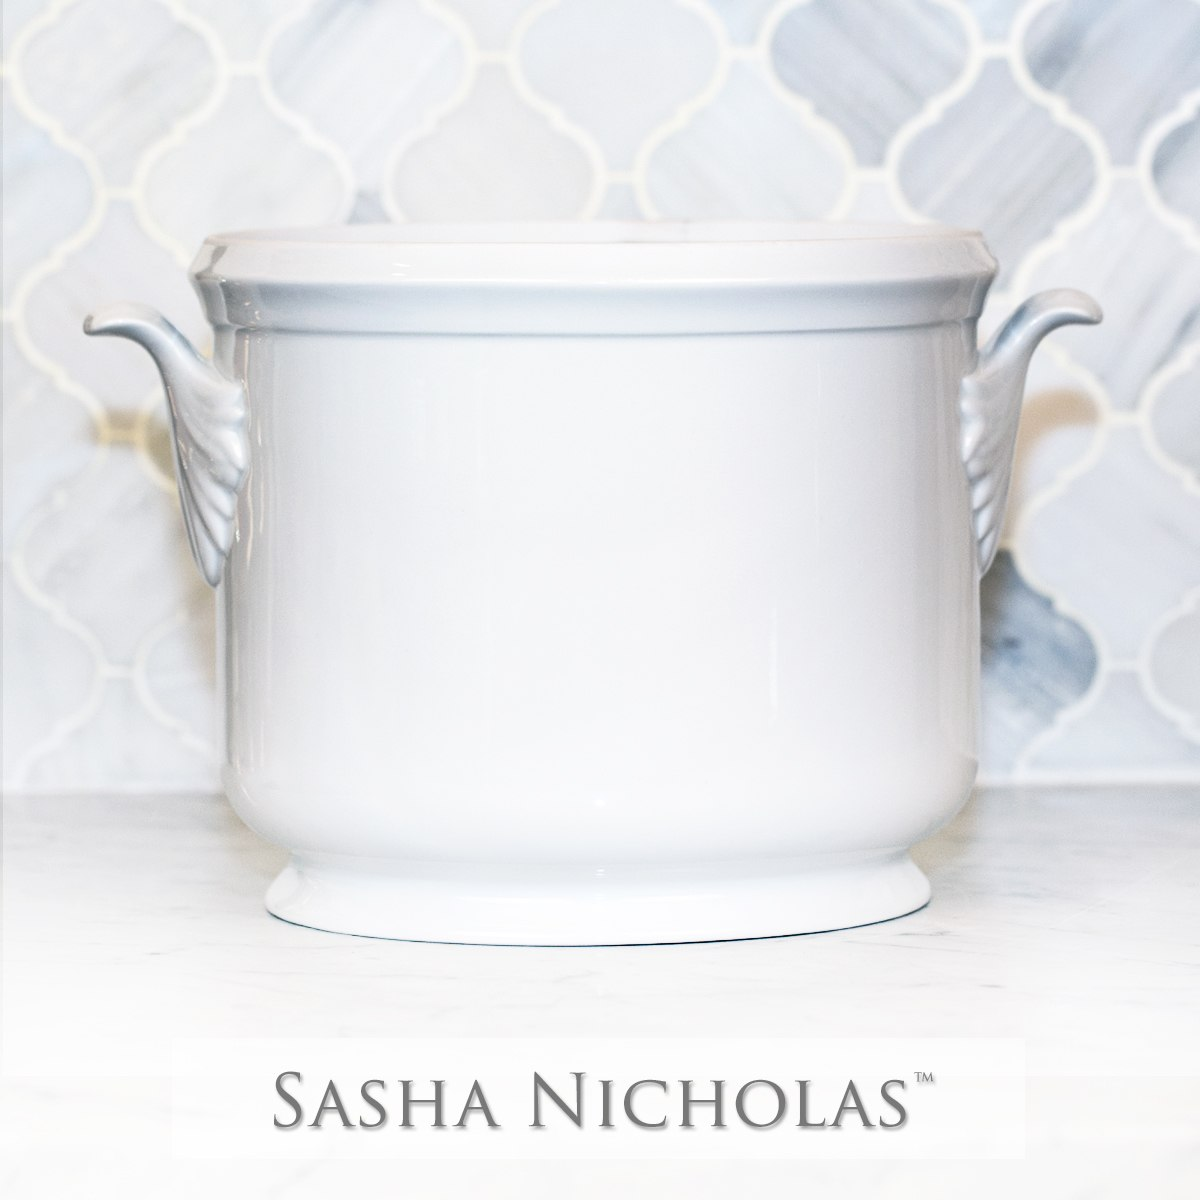 A beautiful addition to your dinnerware collection and to adorn your tablescapes with. It makes the perfect gift for your wedding registry with the included handwritten inscription on back. Choose from their signature font styles or use a custom monogram or crest of your choice! | Sasha Nicholas's white porcelain champagne bucket